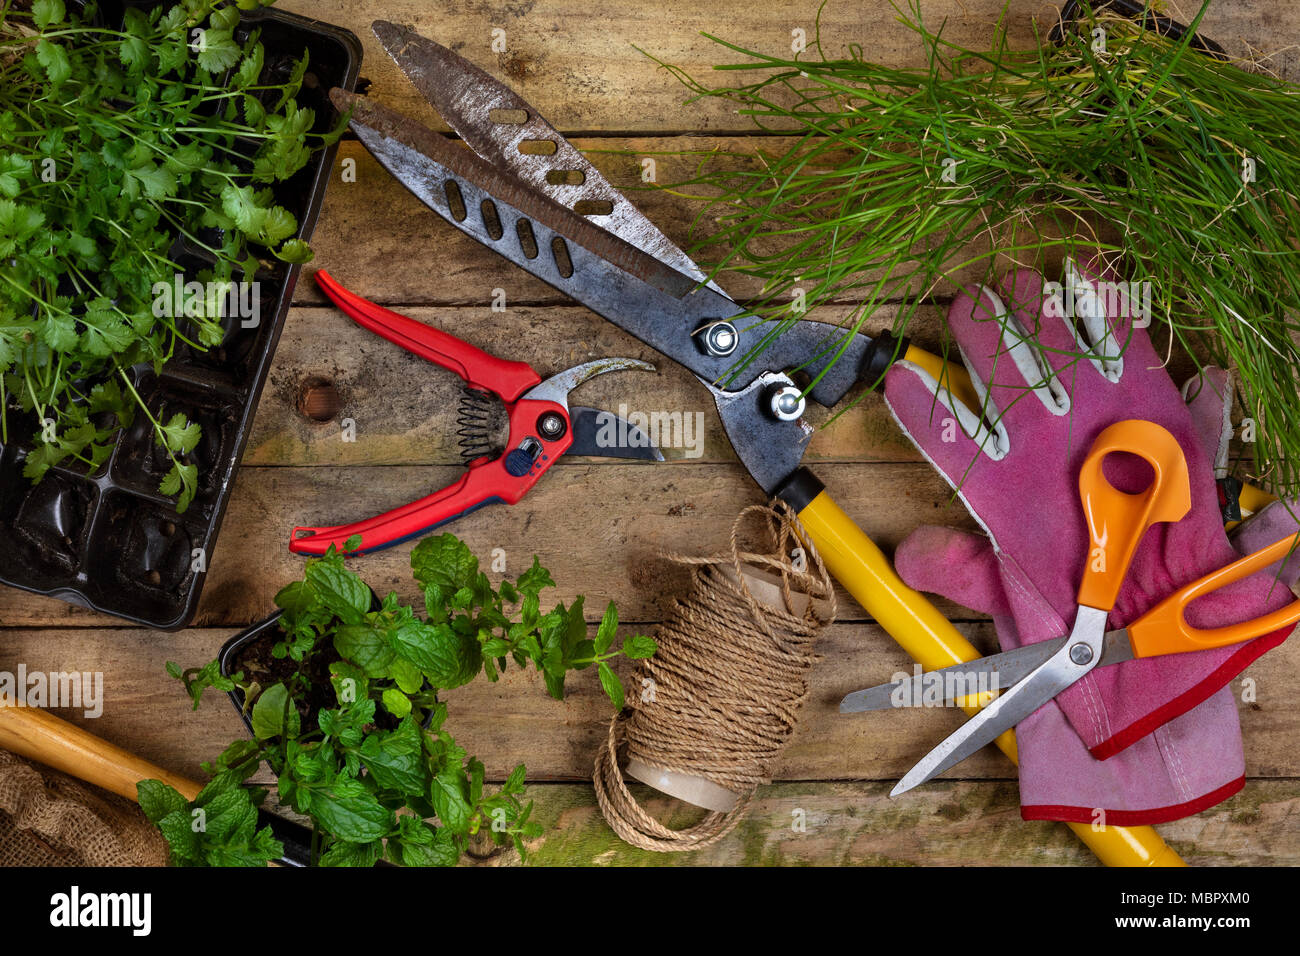 Gardening - Horticulture. A few garden tools used when gardening. - Stock Image